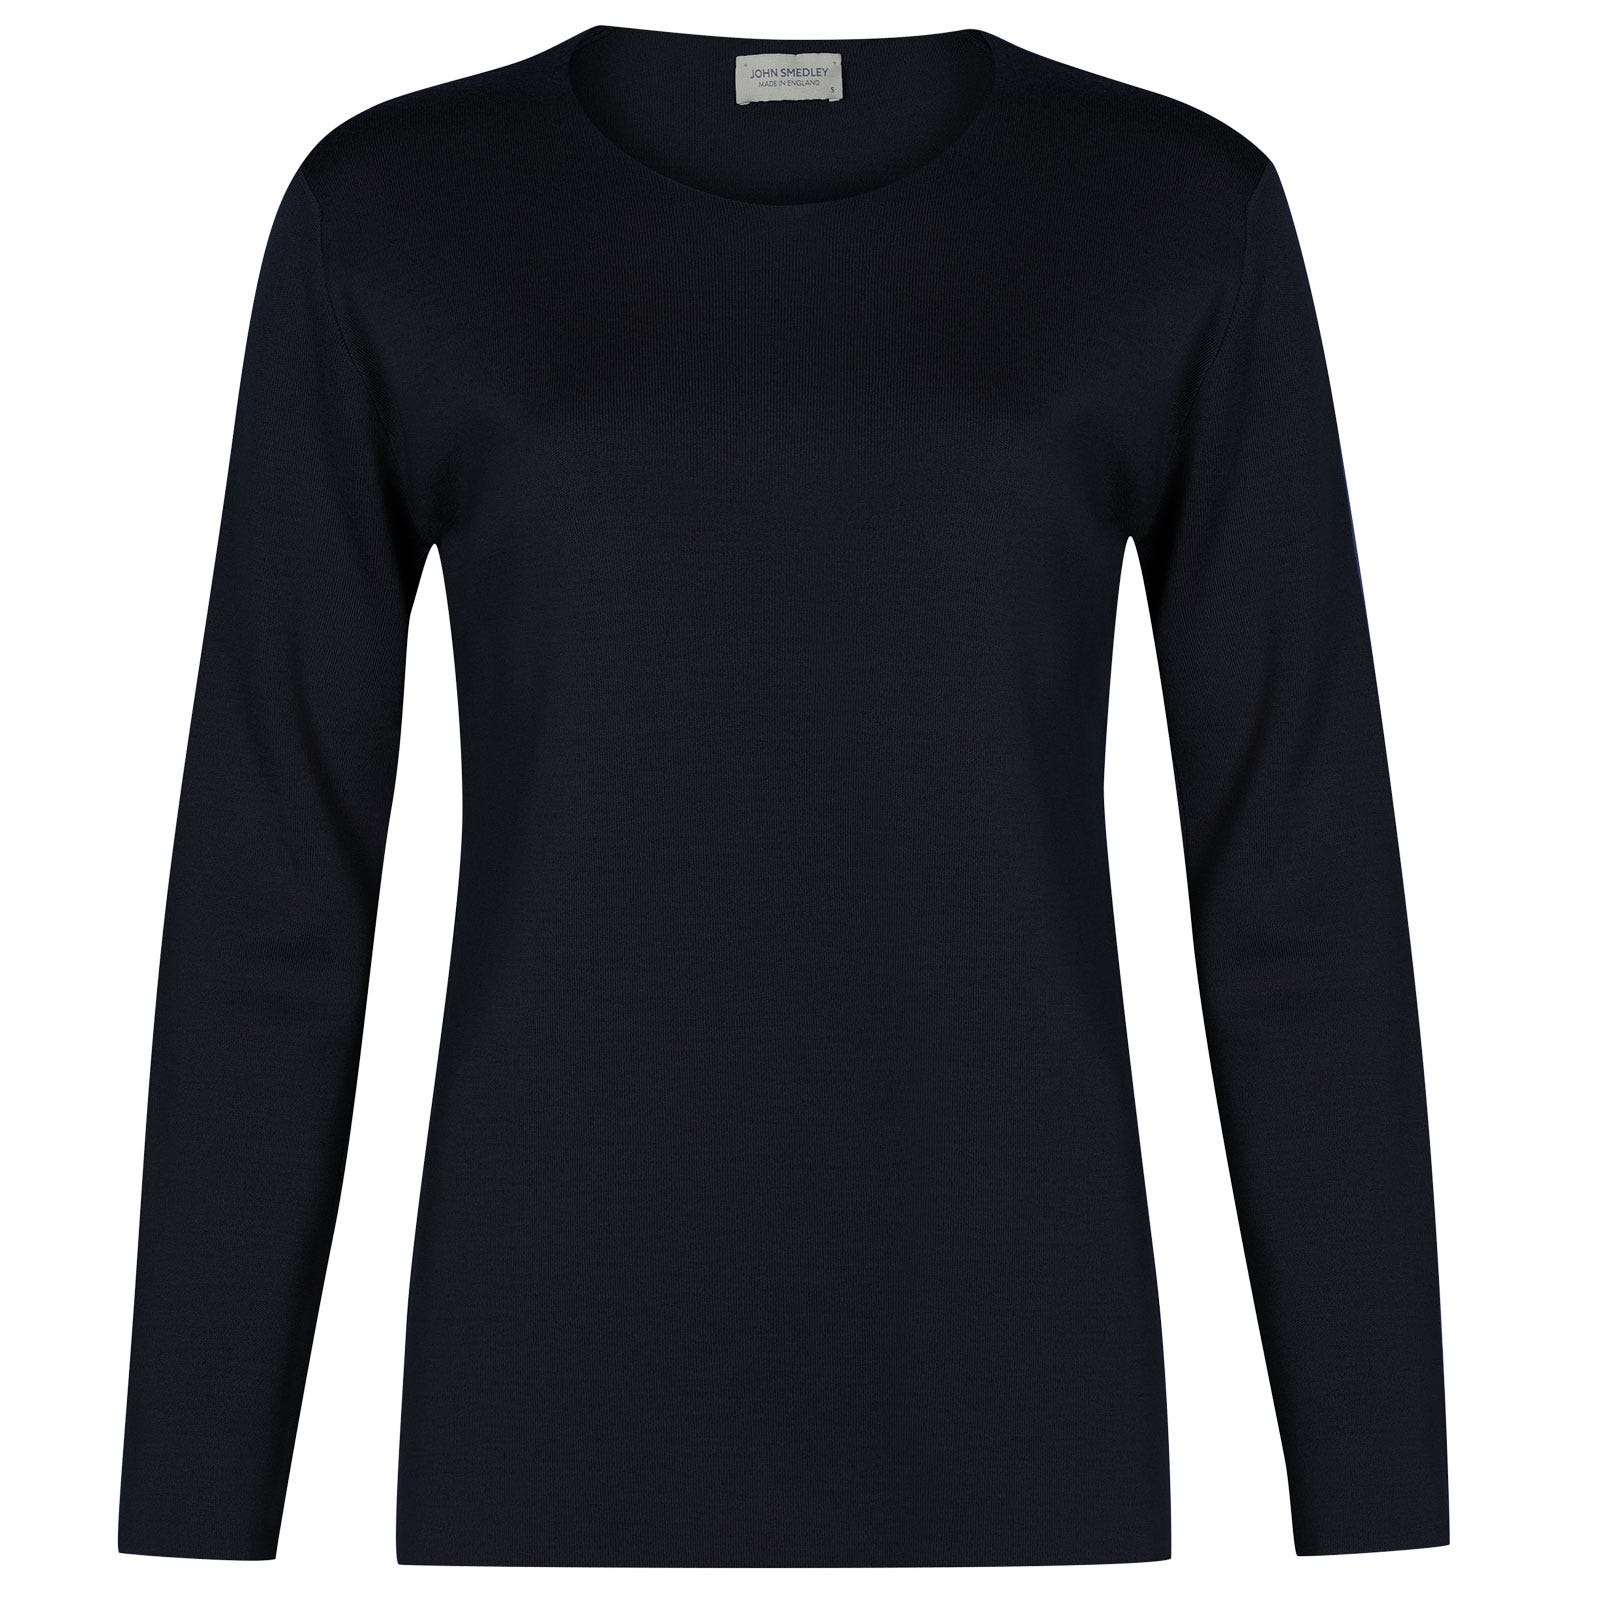 John Smedley Milton Merino Wool Sweater in Midnight-S